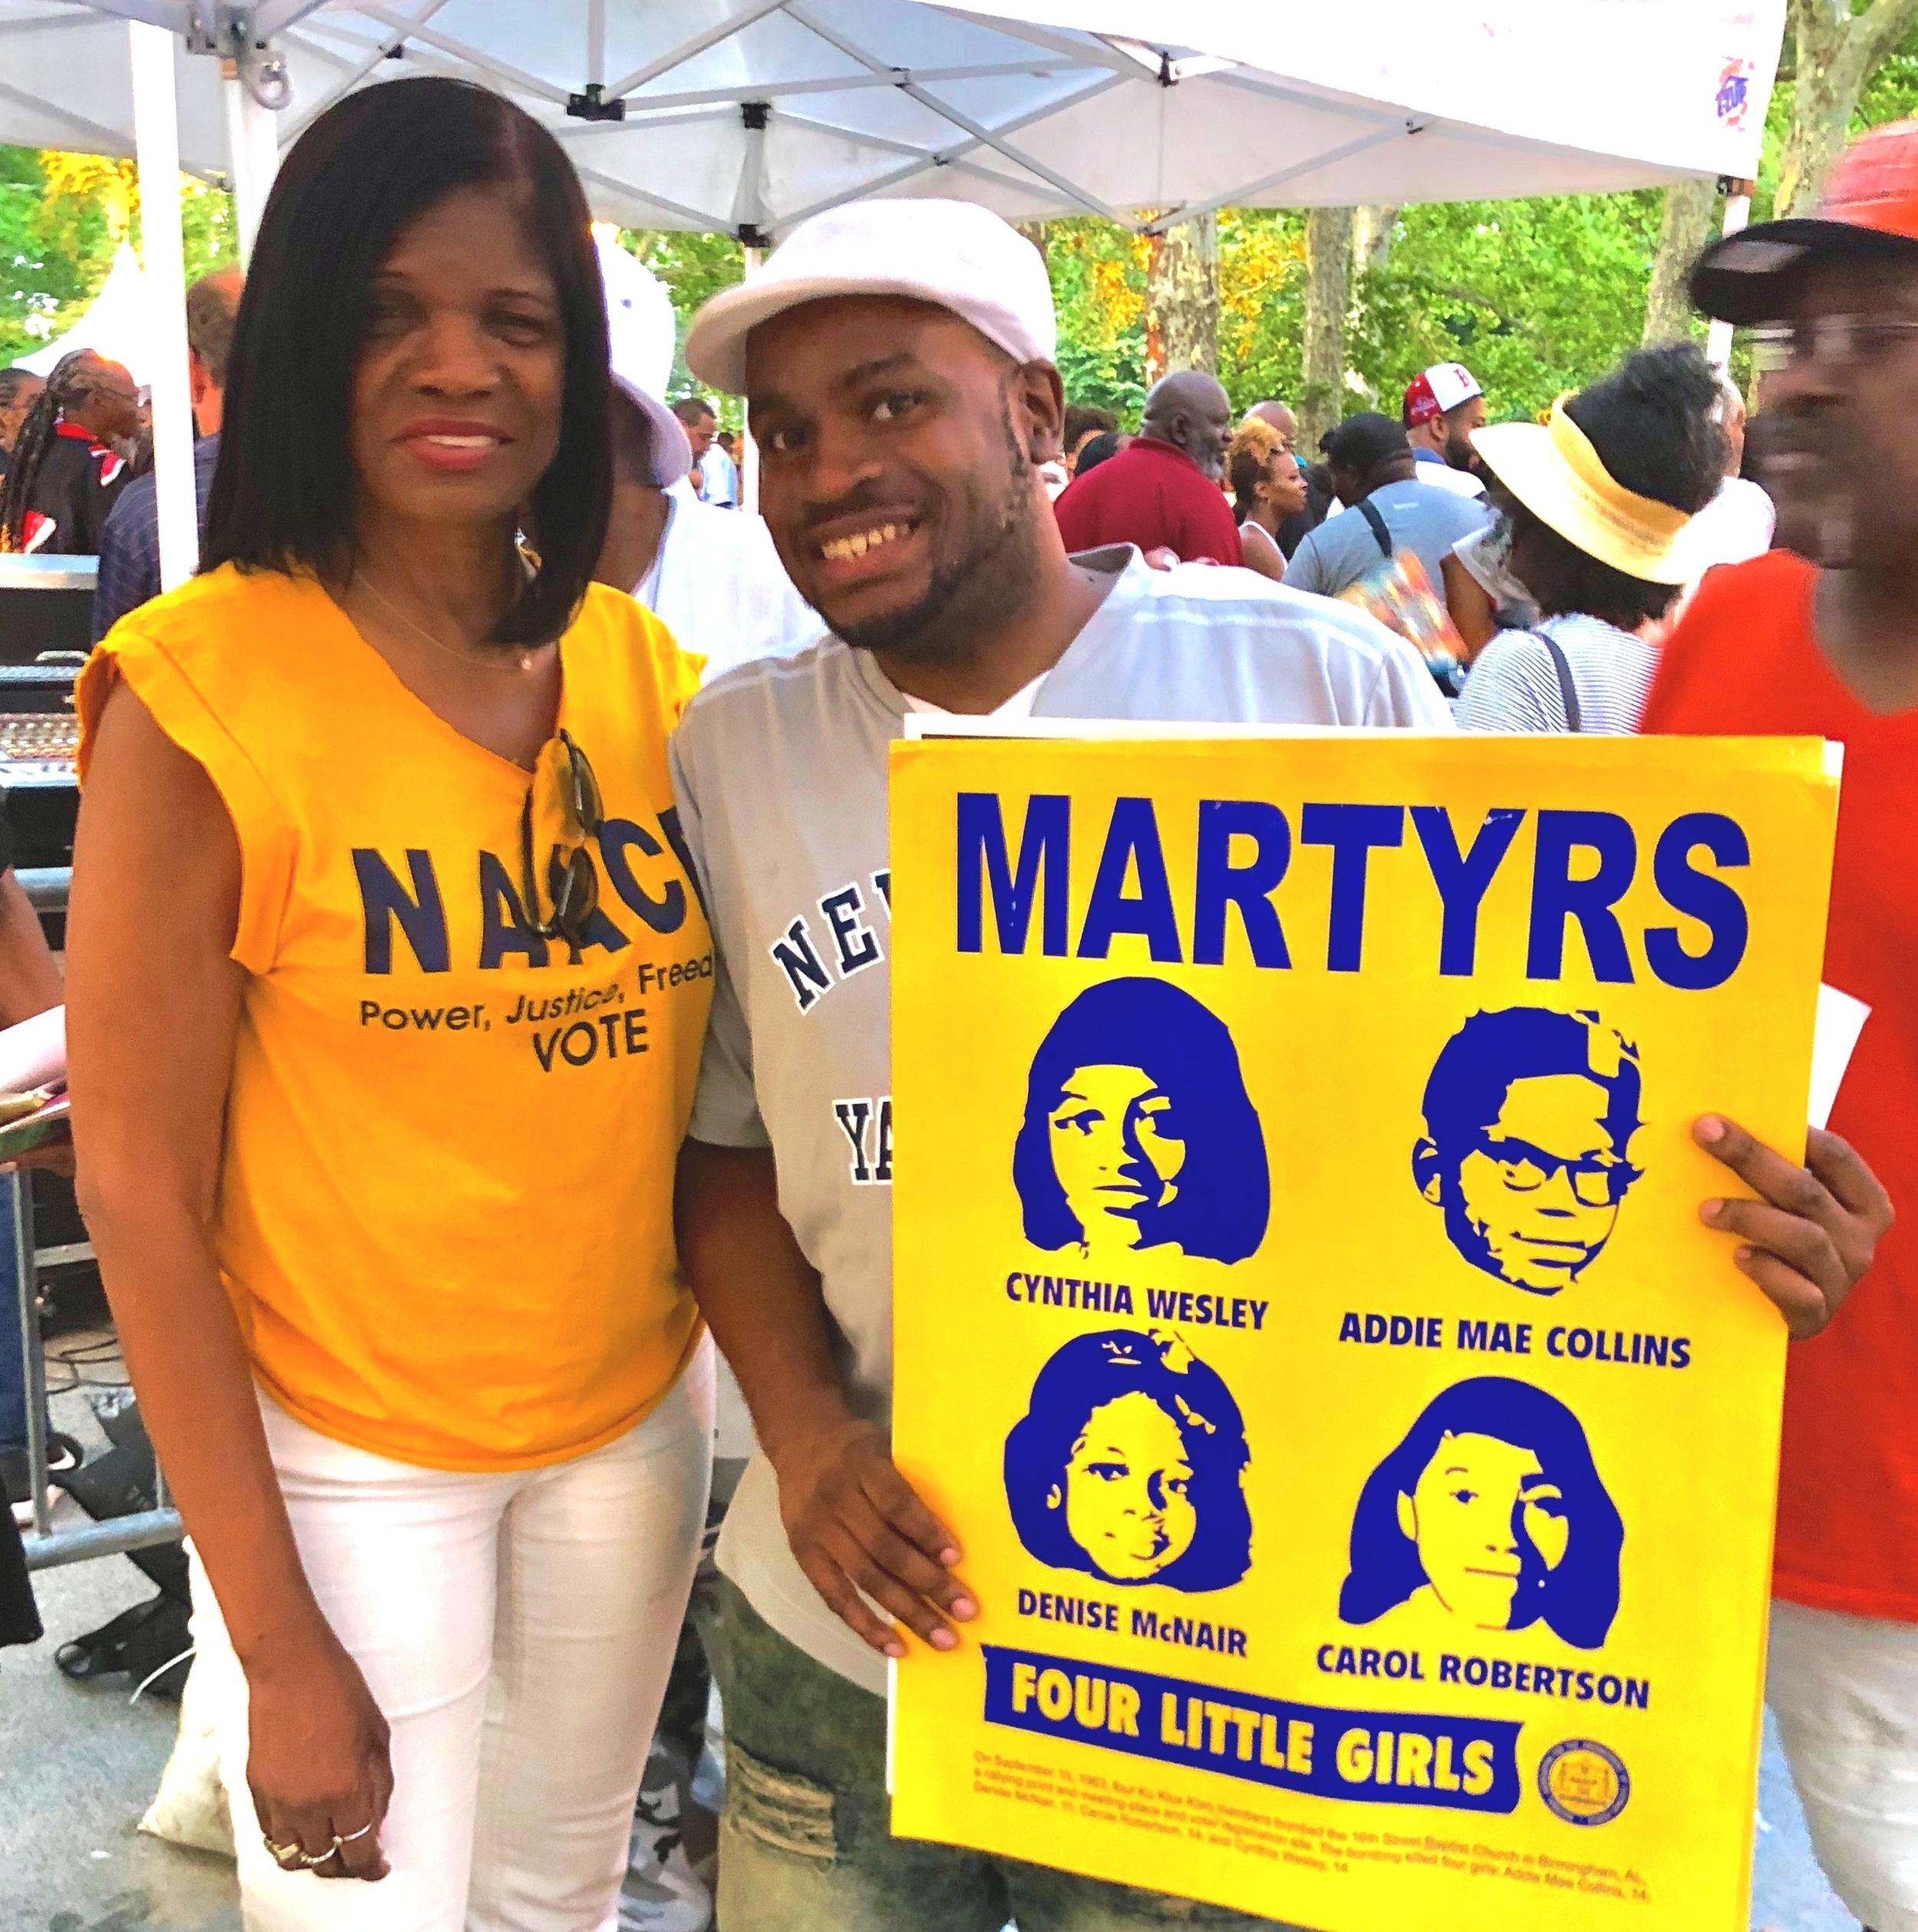 NAACP NYS Civic Engagwement & Membership Day @ A Great Day in Harlem.jpg2.jpg